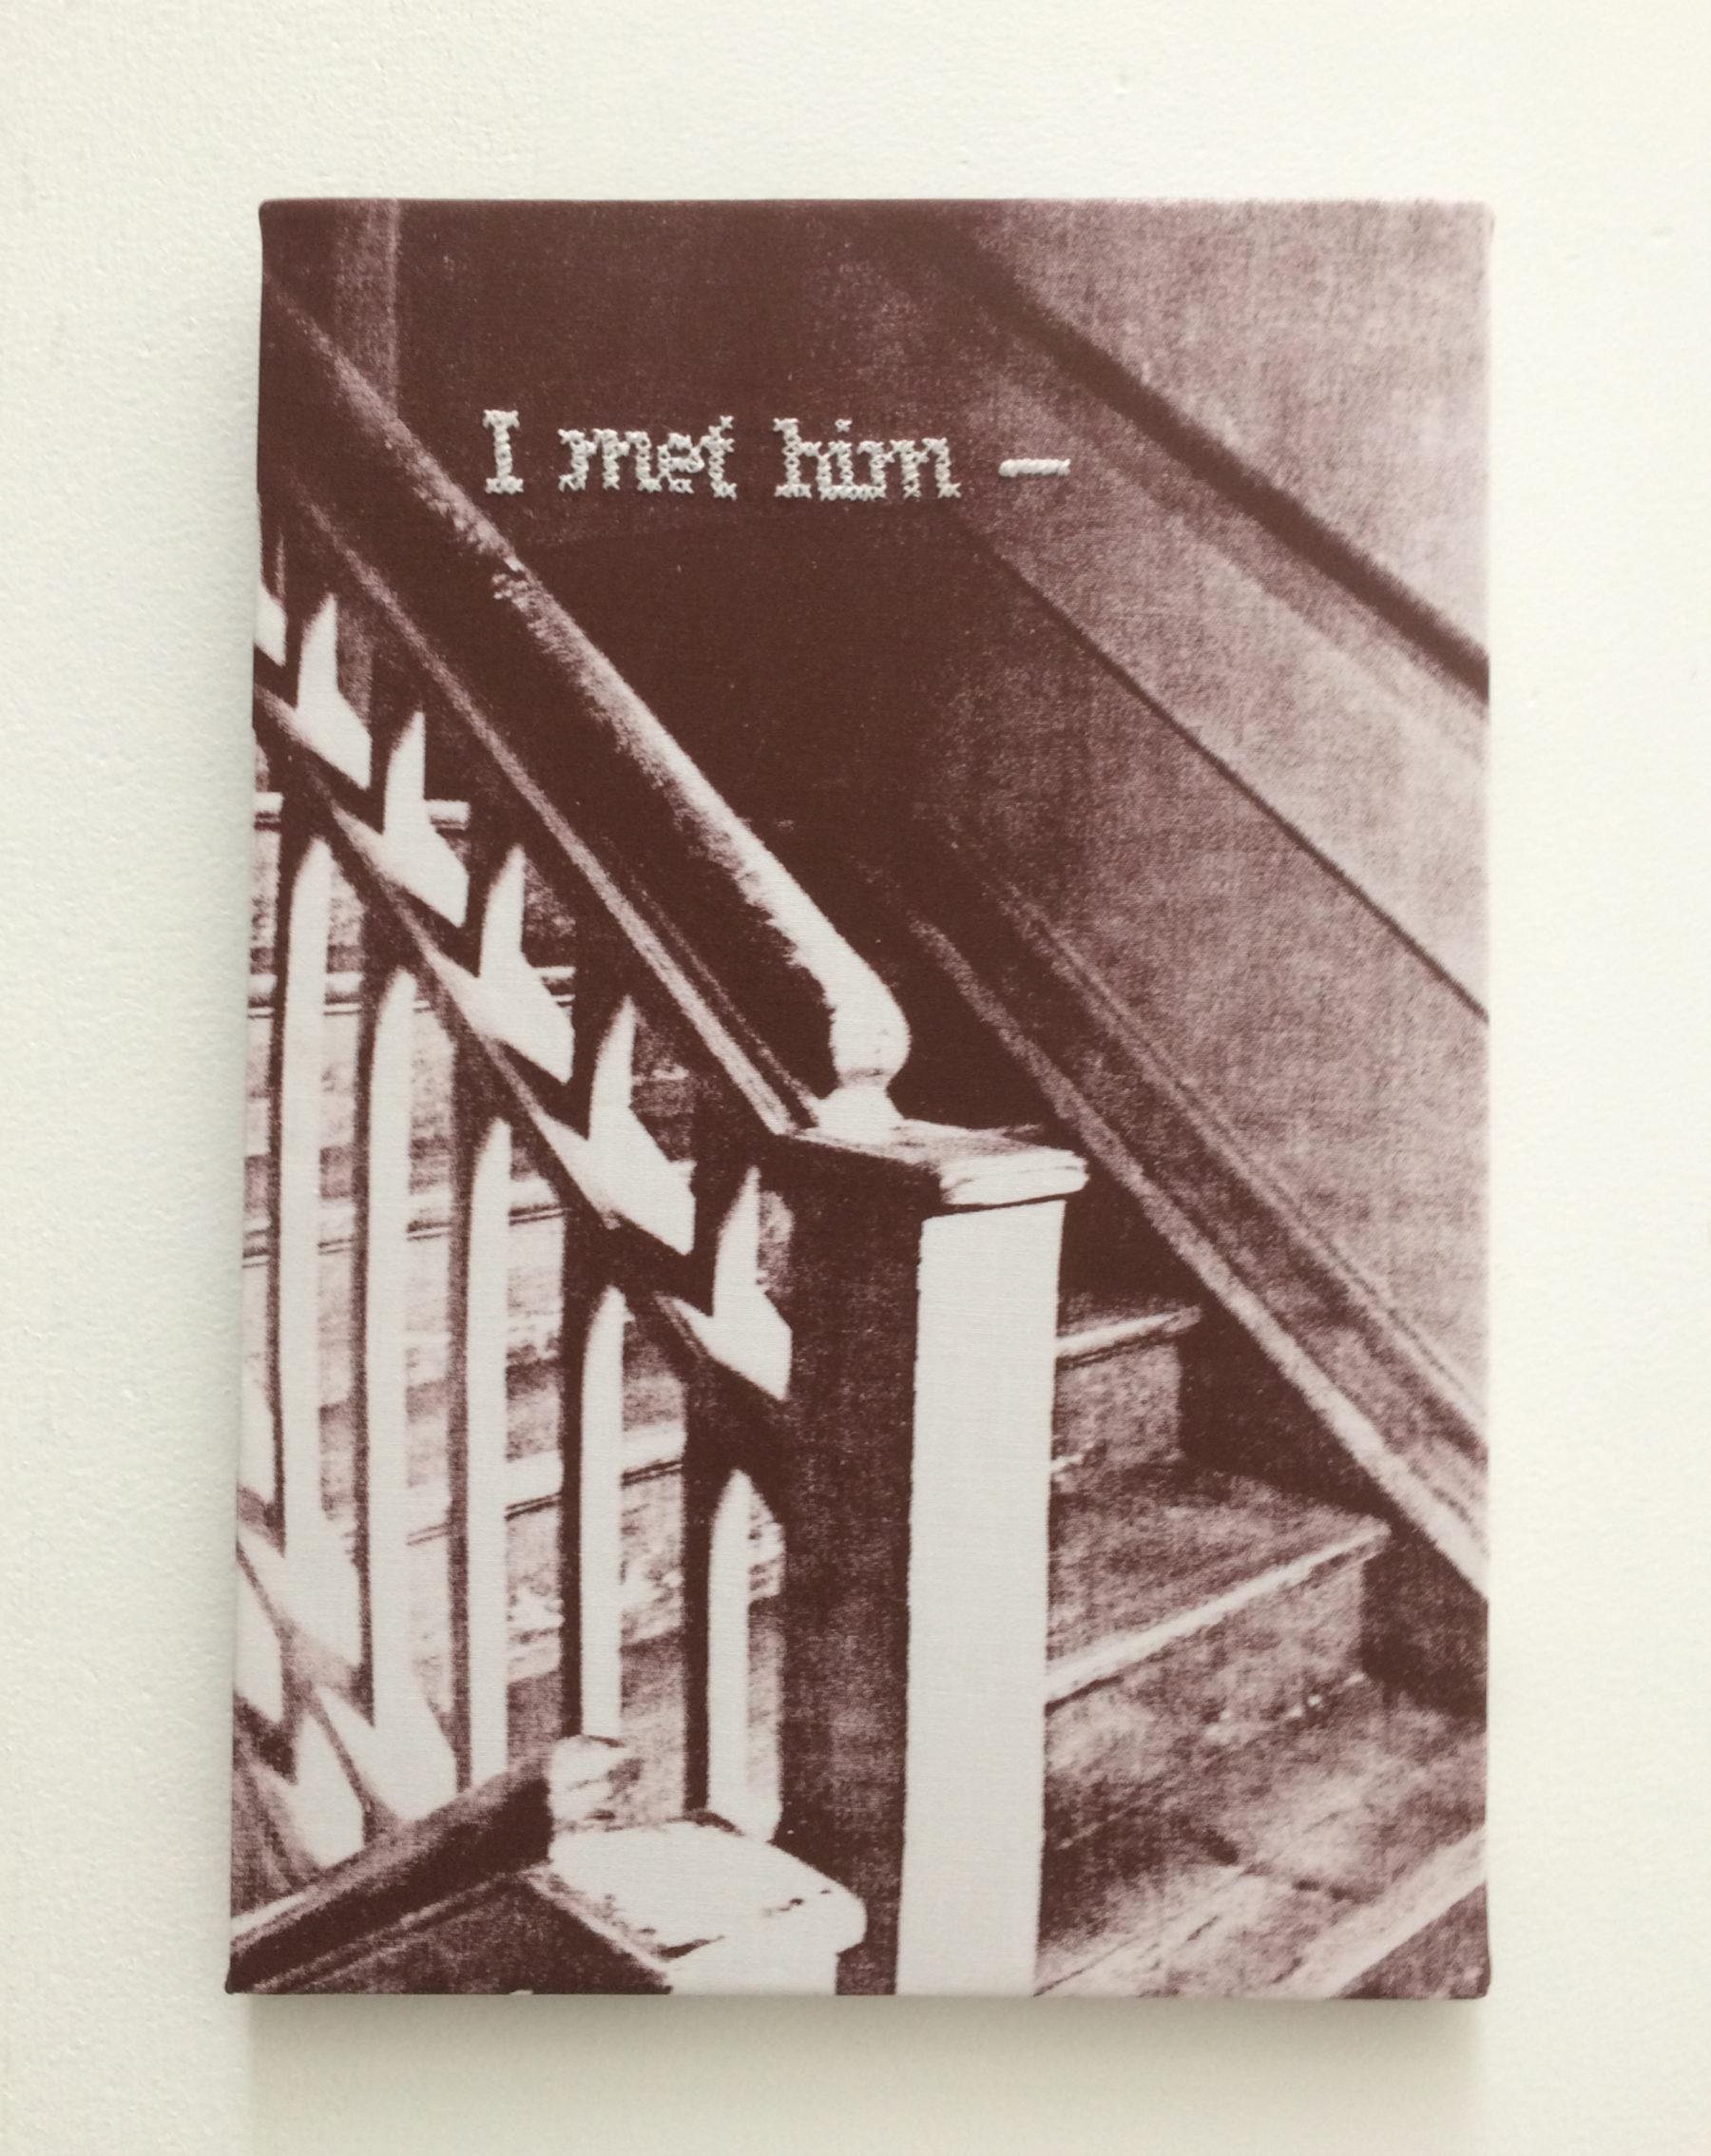 'I met him' - (Emily Dickinson)- silkscreen on canvas -text embroideredby hand - 35 x 25 cm - 2015